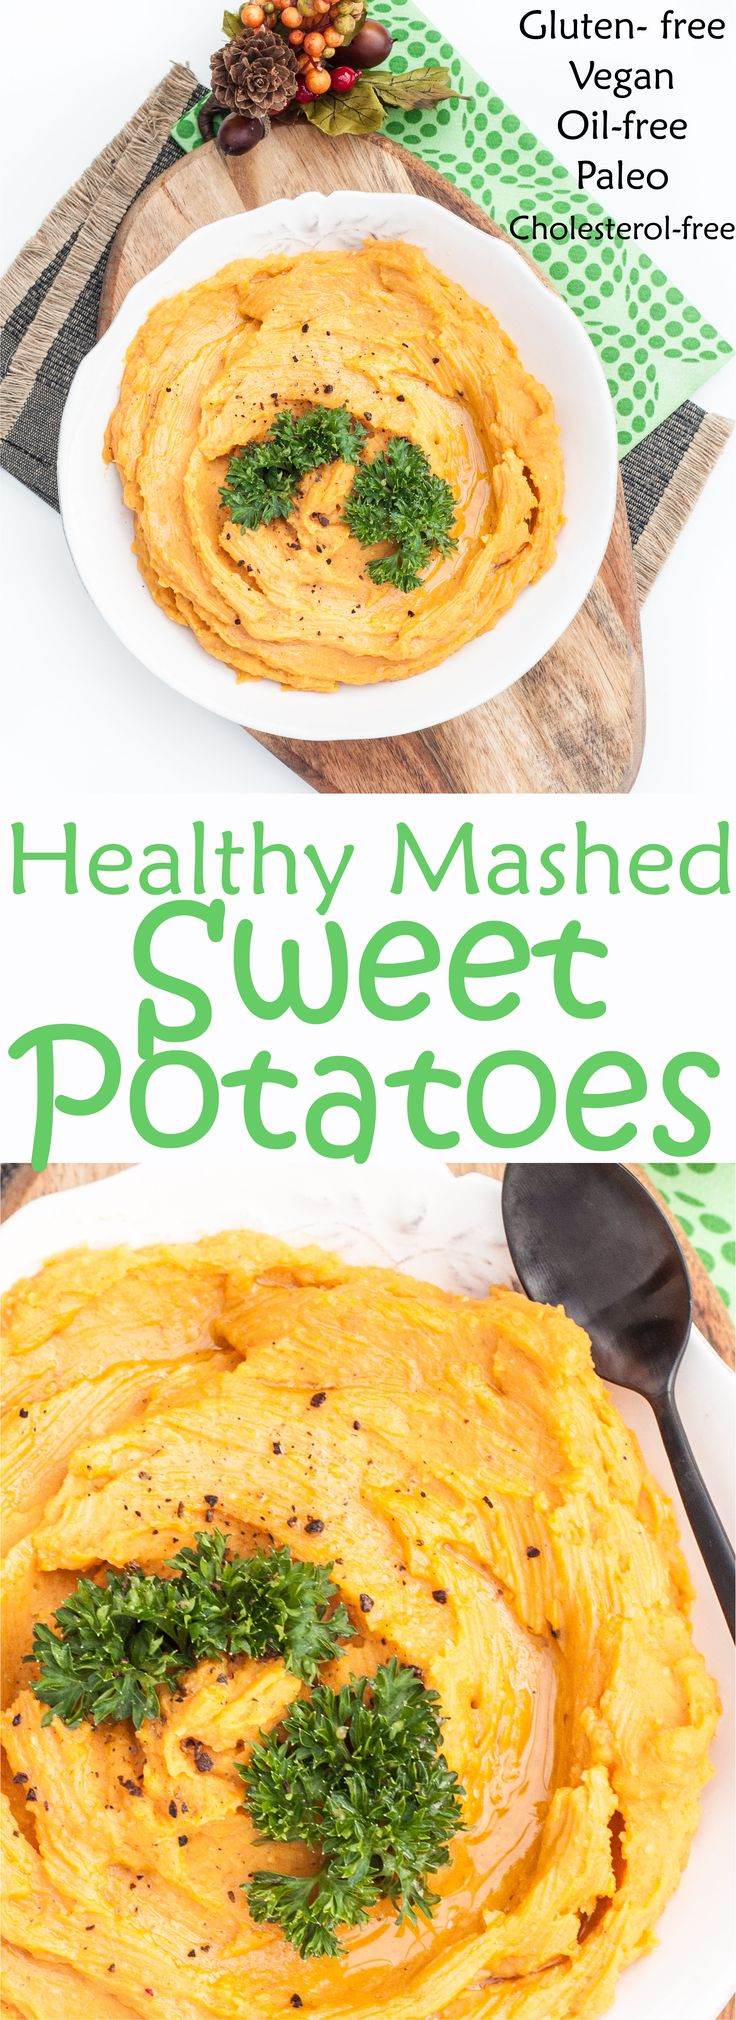 Healthy Mashed Sweet Potatoes Recipe. These mashed sweet potatoes will blow regular mashed potatoes out of the water! Very healthy, vegan, gluten-free, paleo, and without any butter and dairy-free! | VeganFamilyRecipes.com |  #glutenfree #vegetarian  #oil-free